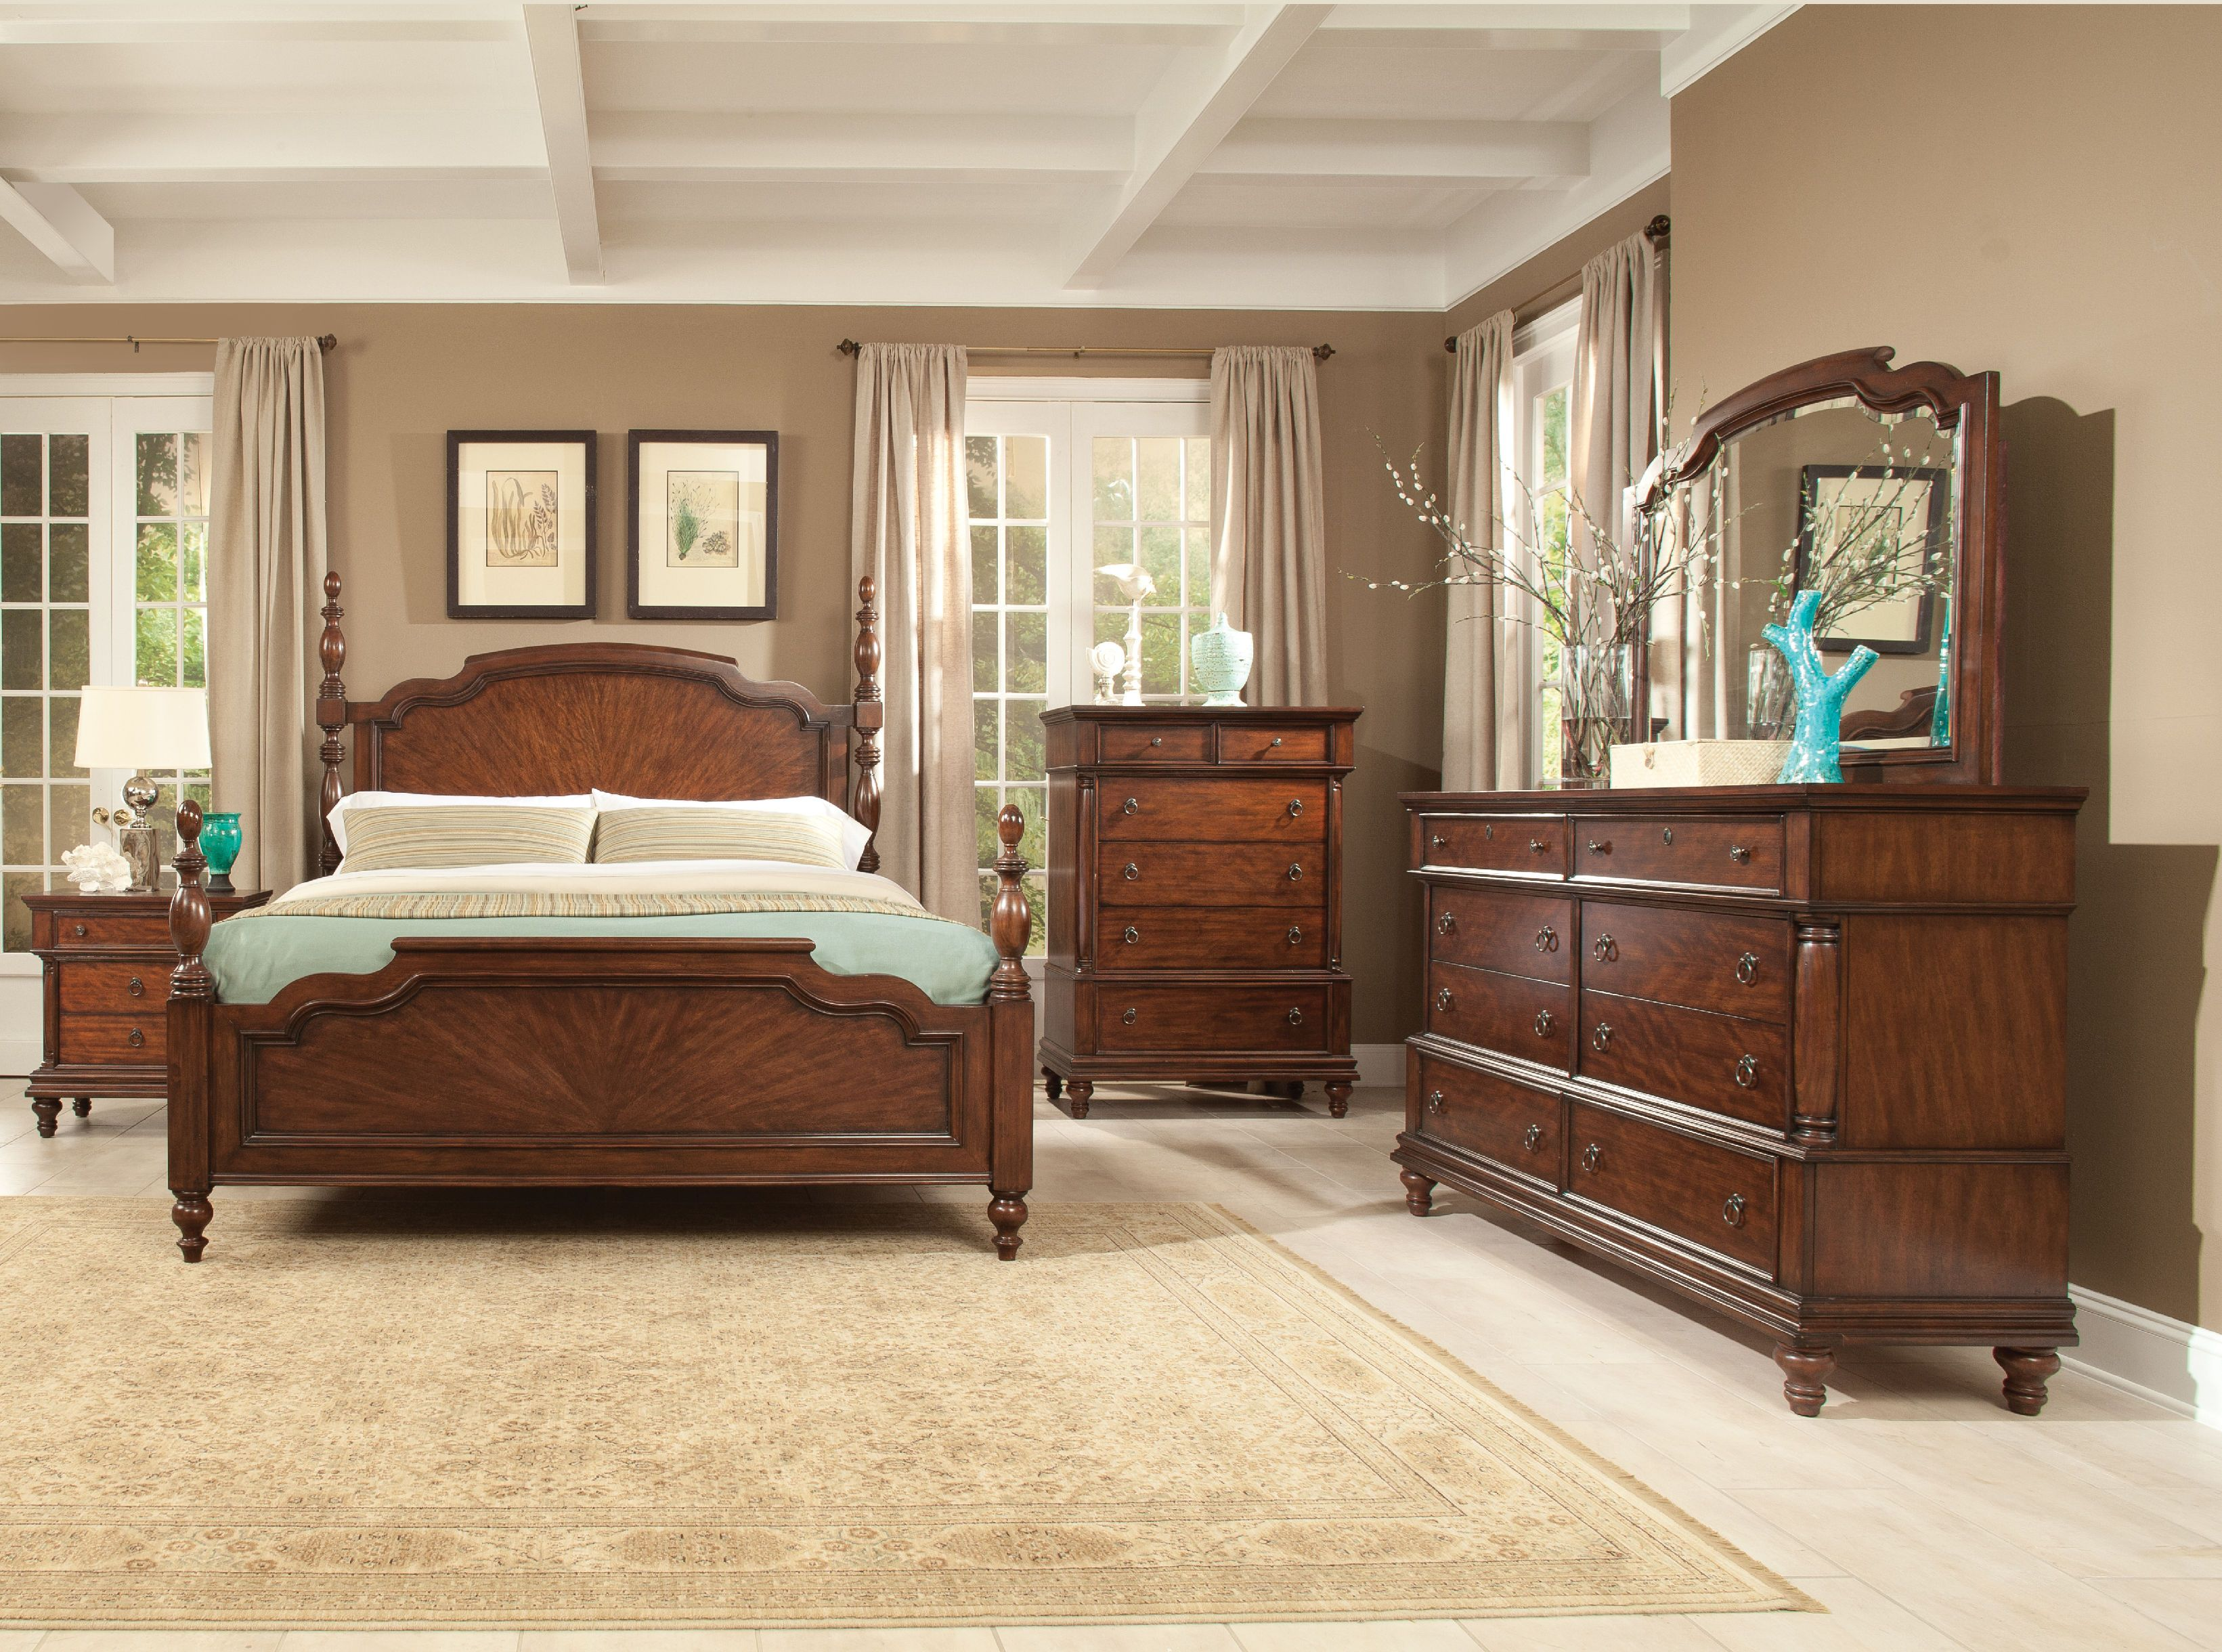 Traditional 18th century and west indies deign elements for Very bedroom furniture